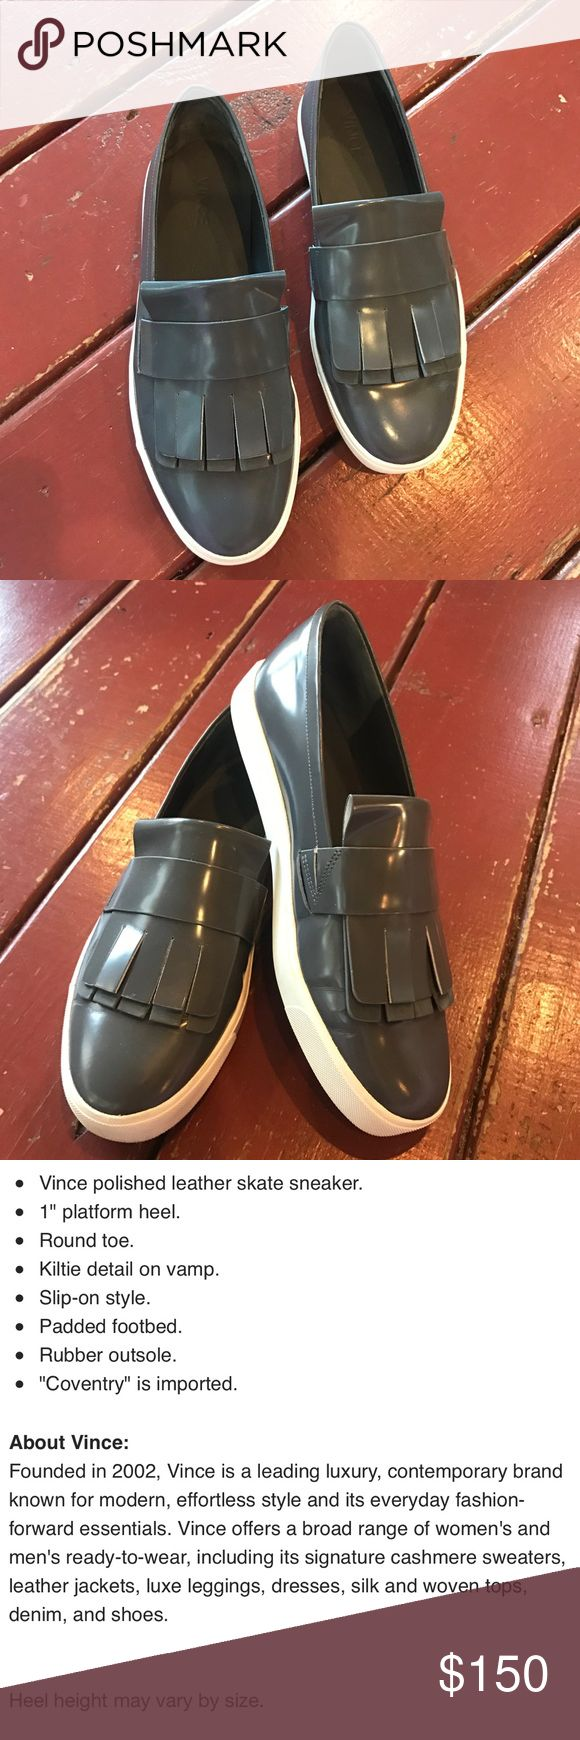 Coventry Kiltie Leather Skate Sneaker Gray patent with white rubber sole and fringe detail. Worn 1 time for short period. Open to offers! Vince Shoes Sneakers